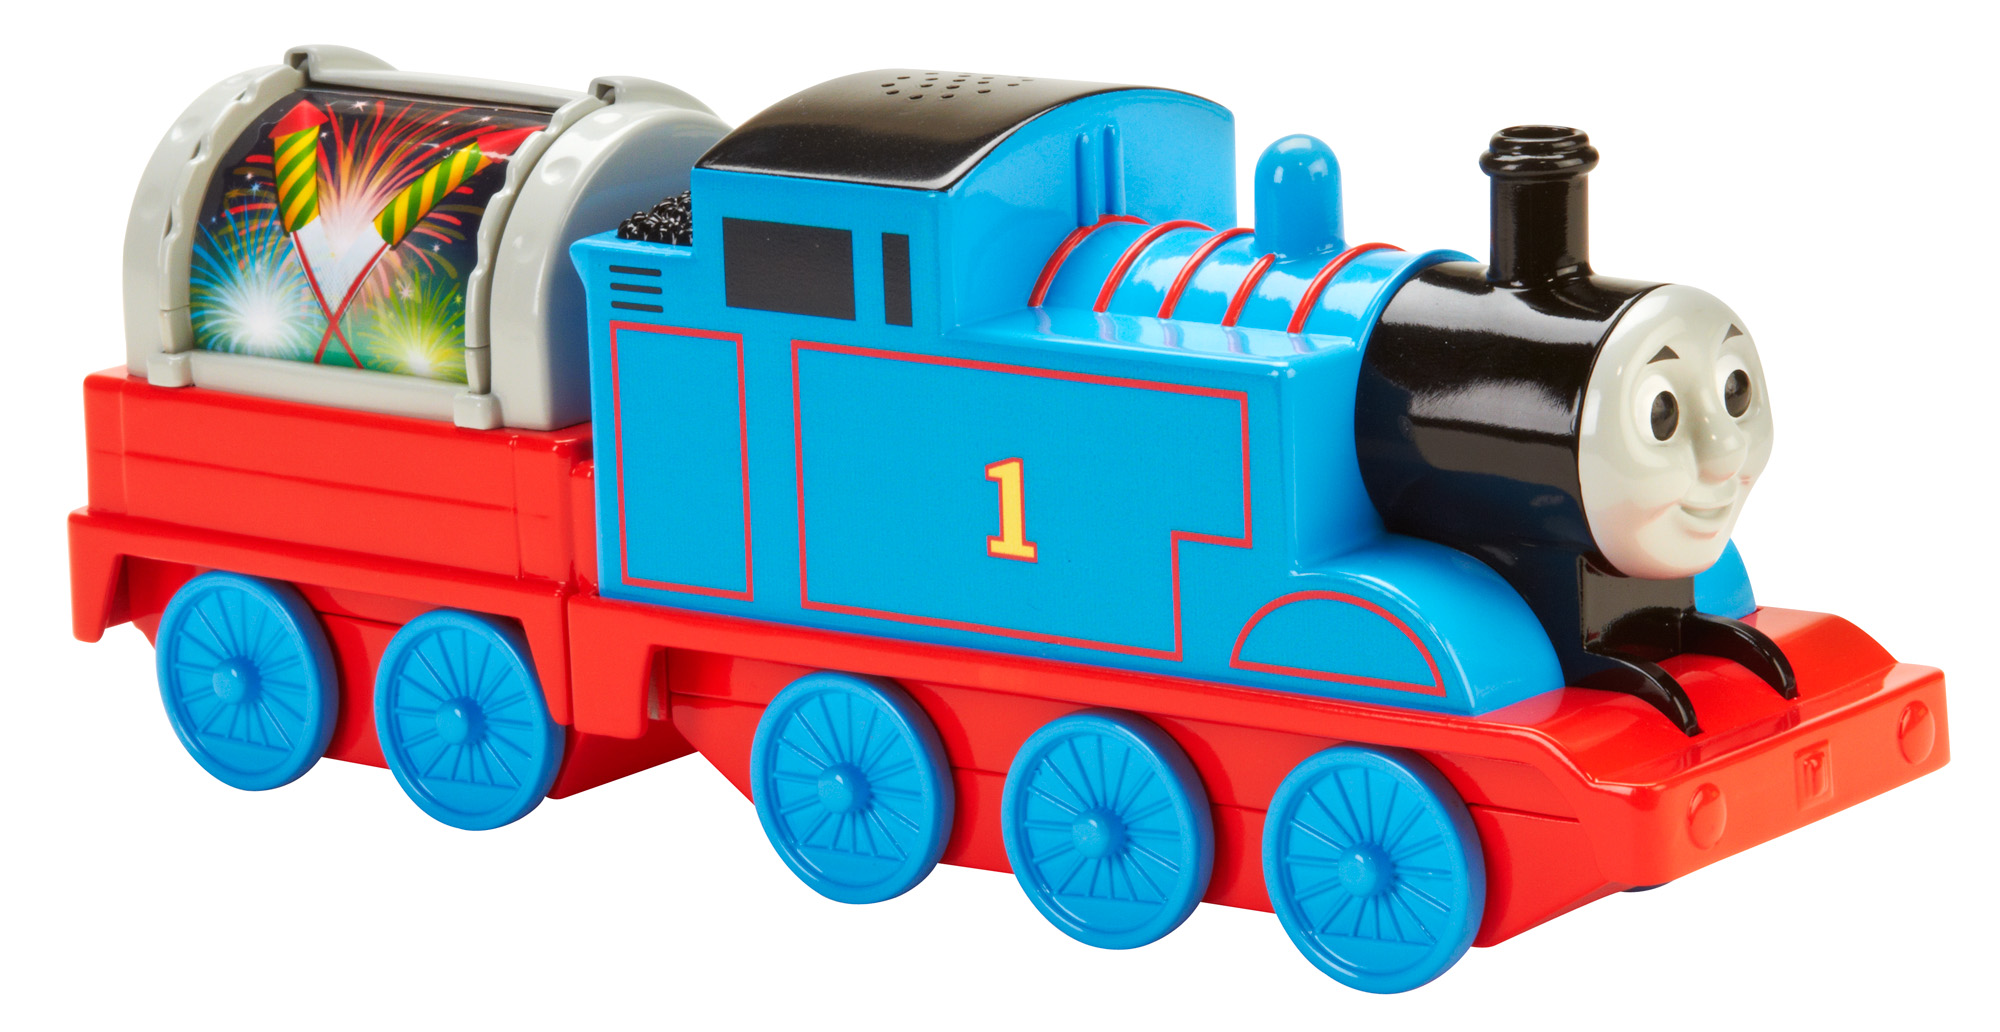 Fisher Price My First Thomas and Friends Surprise Delivery Thomas by FOSHAN CITY NANHAI MATTEL DIECAST CO., LTD.